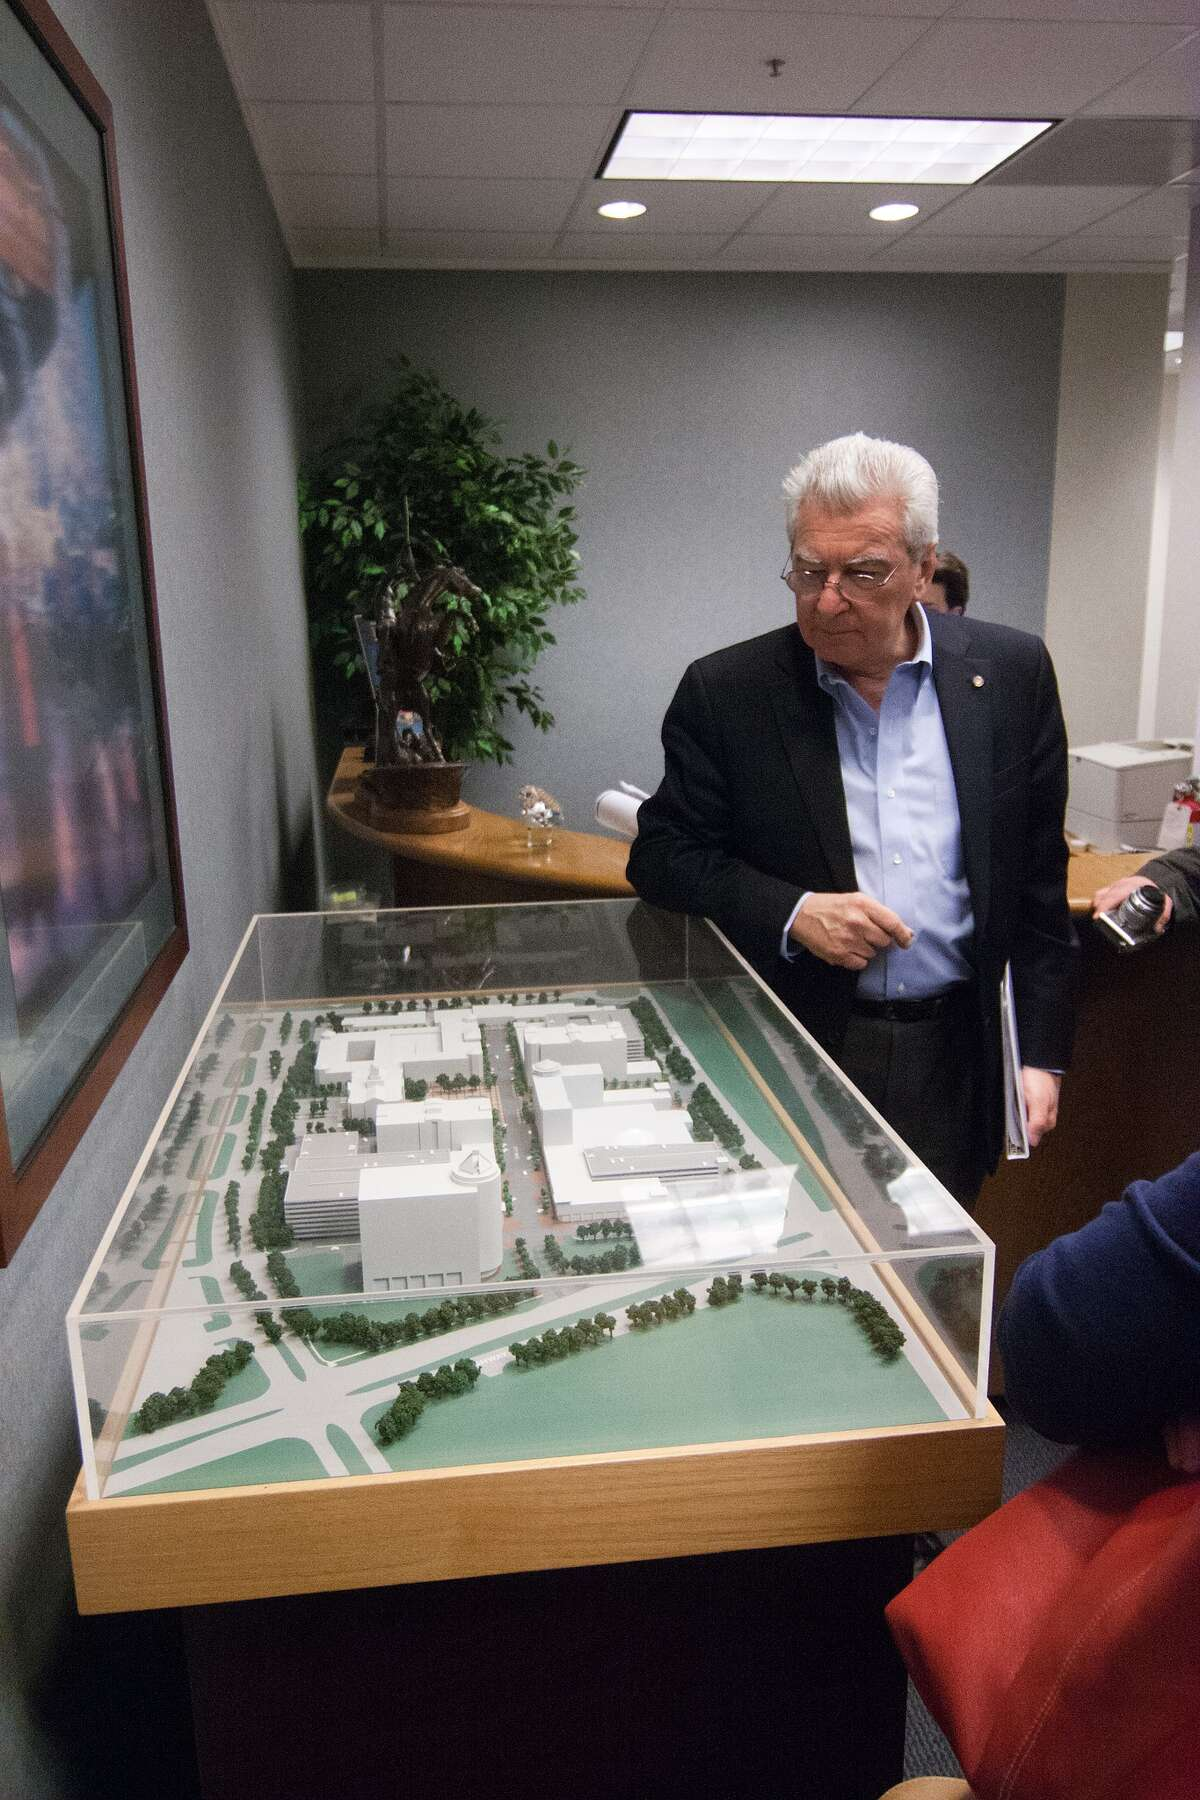 Ronald Altoon, a member of the Urban Land Institute award jury, checks out a model of Sugar Land Town Square before leaving to tour the real thing. Altoon is a trustee of the International Council of Shopping Centers. Ronald Altoon, a member of the Urban Land Institute award jury, checks out a model of Sugar Land Town Square before leaving to tour the real thing. Altoon is a trustee of the International Council of Shopping Centers.